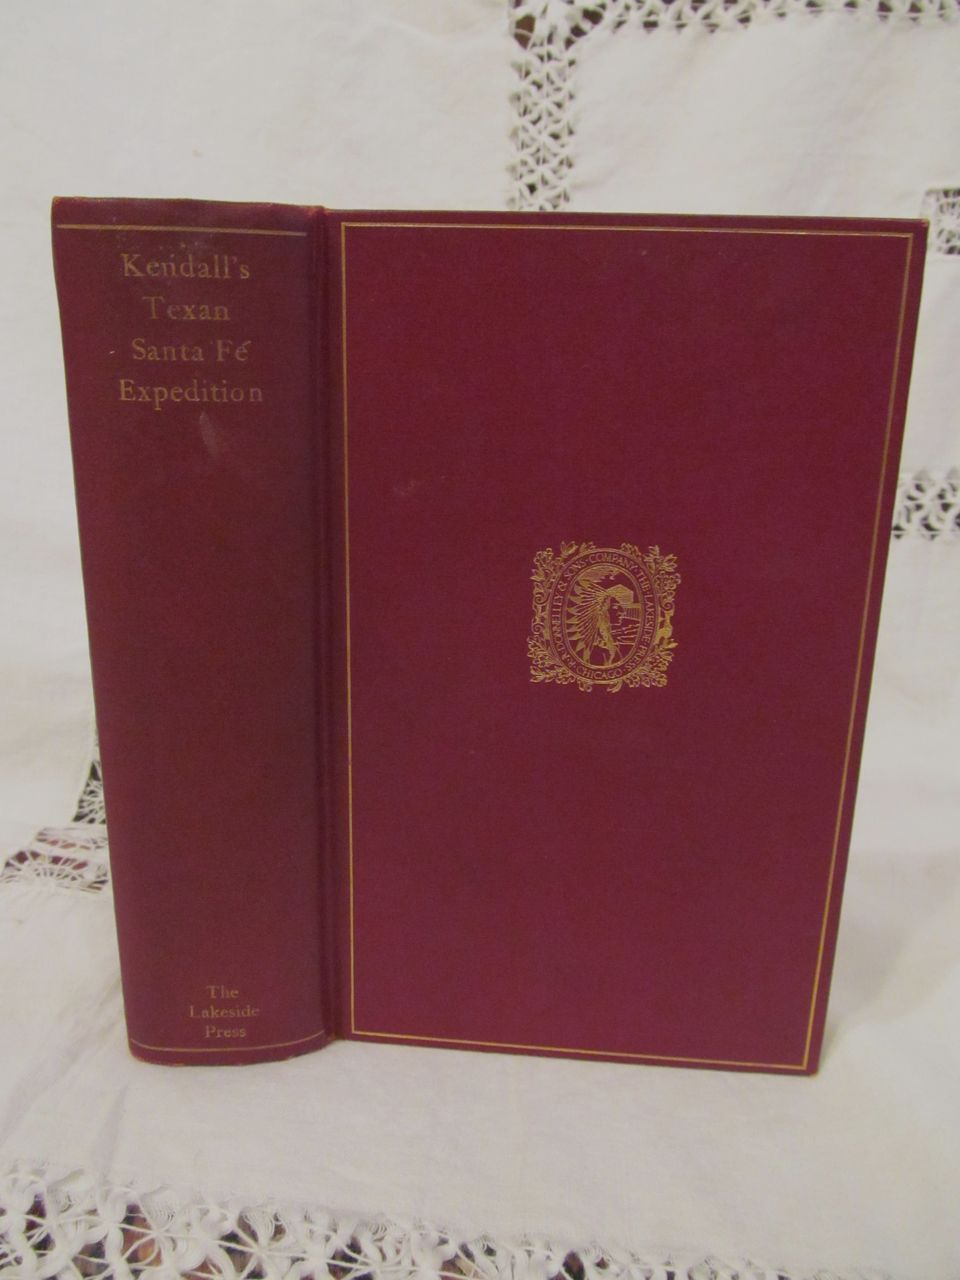 1924 Narrative of the Texan Santa Fe Expedition by George Wilkins Kendall, The Lakeside Classics